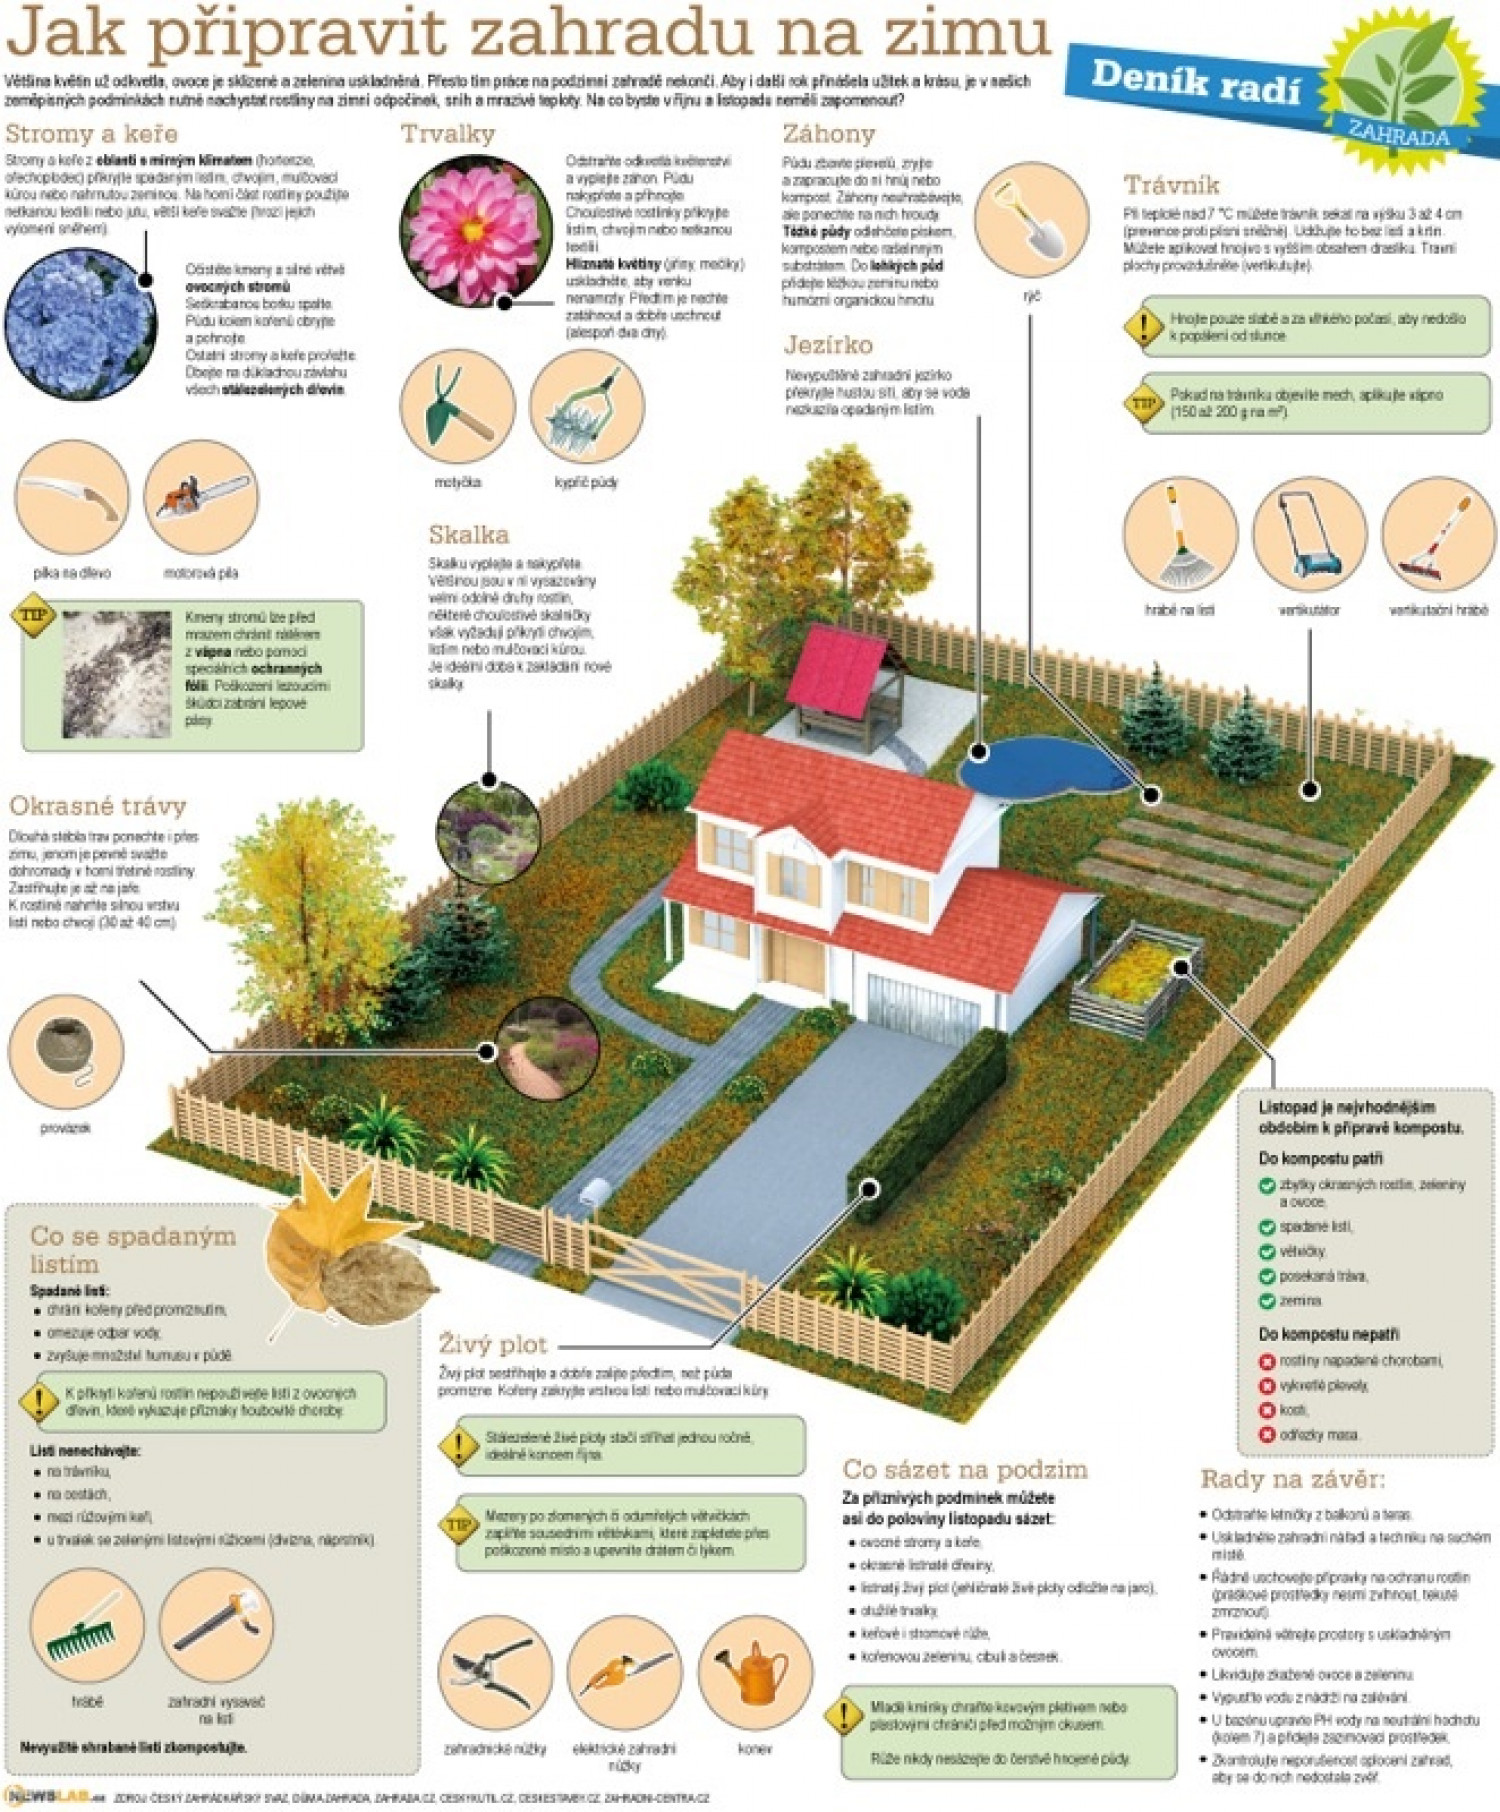 How to prepare the garden for winter Infographic